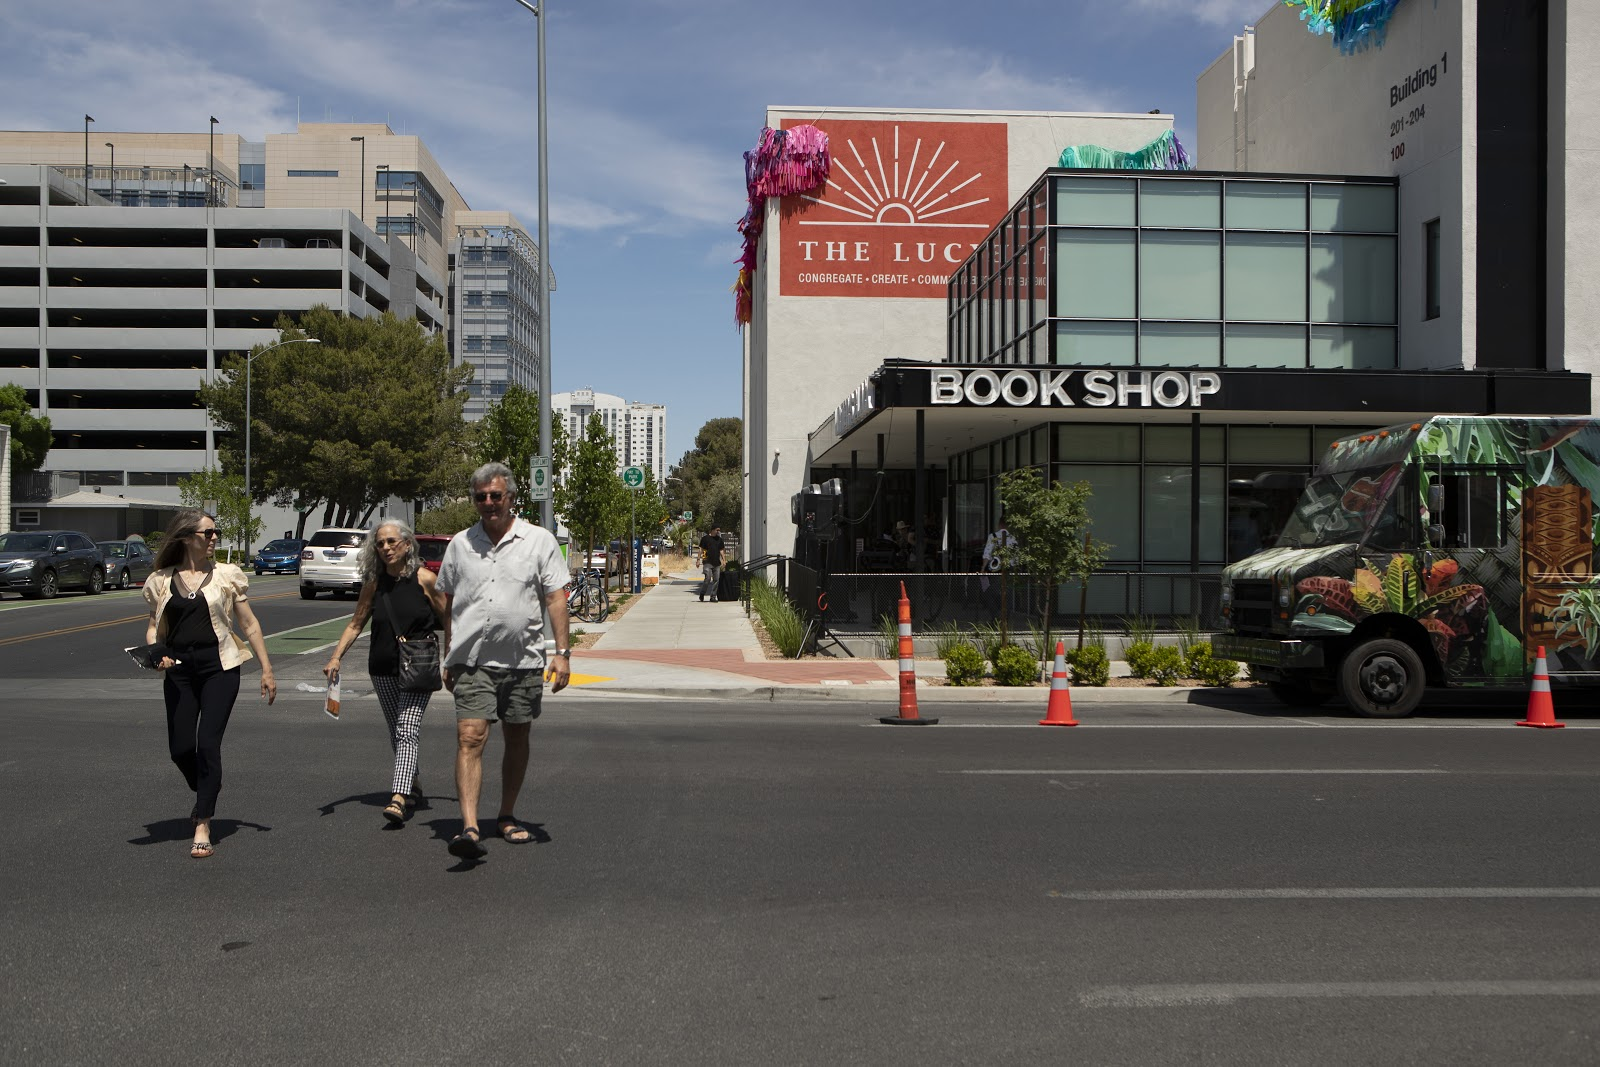 people walking down the street past a store named Book Shop